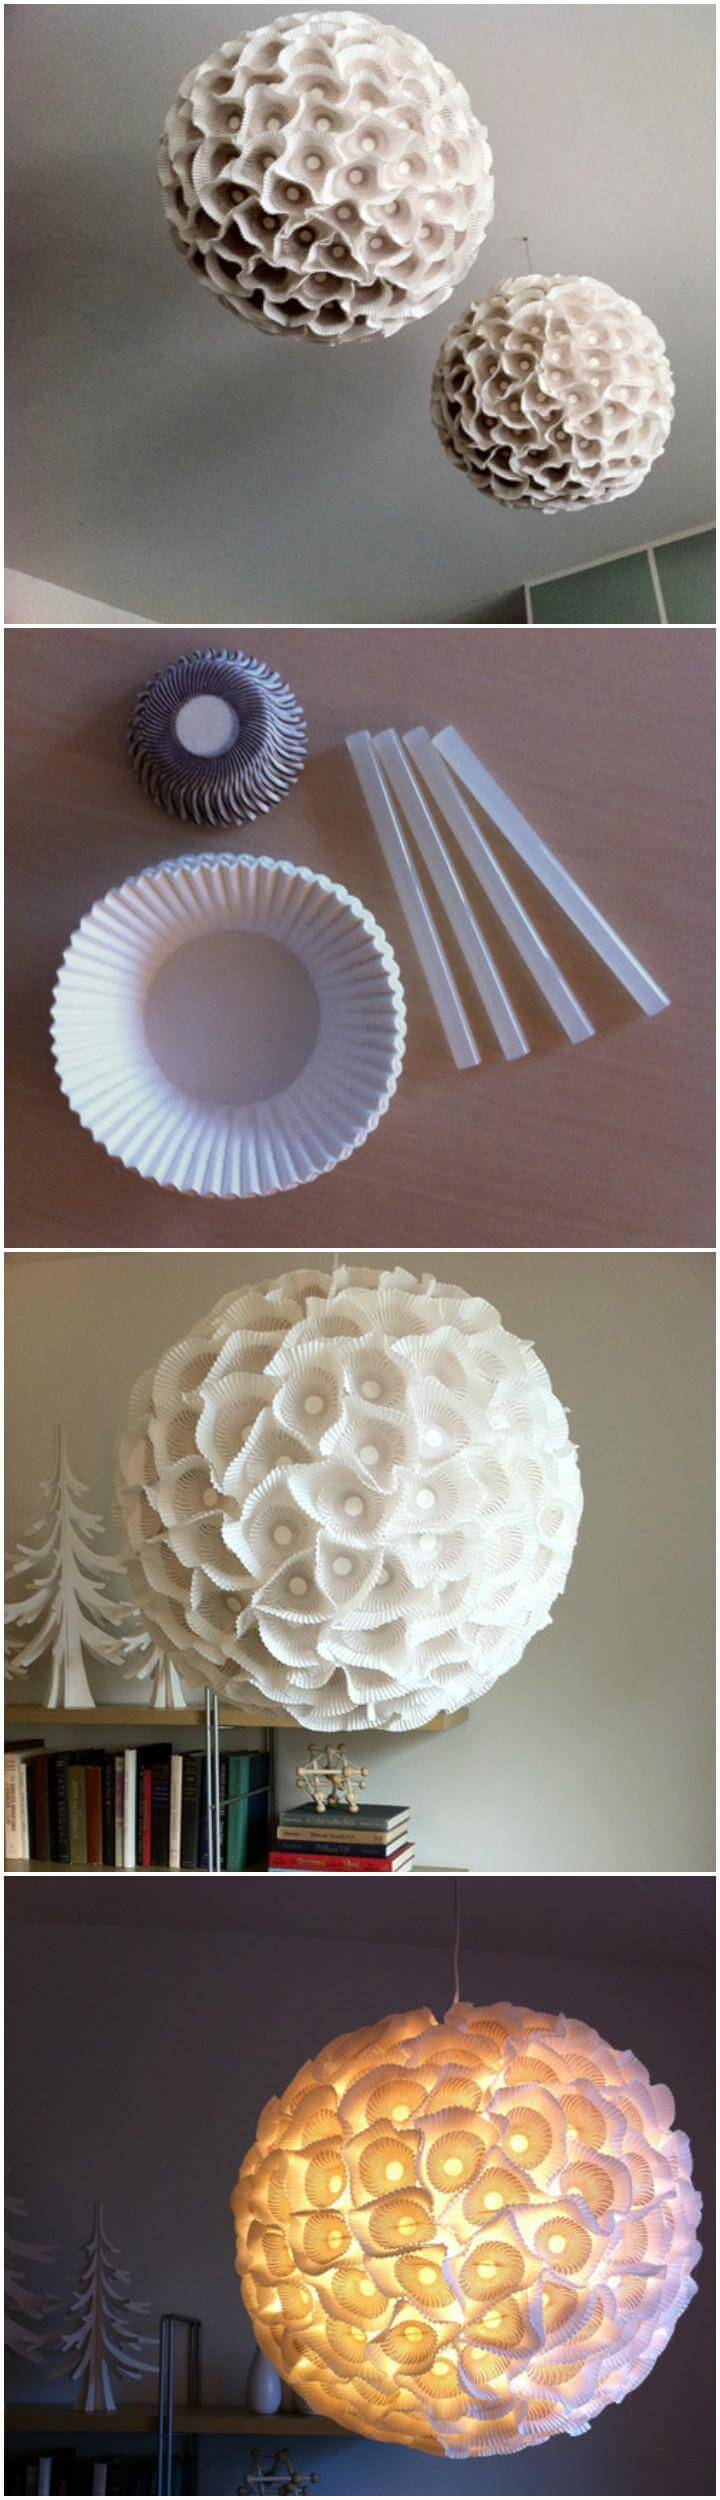 low-cost sculptural paper orb pendant lights